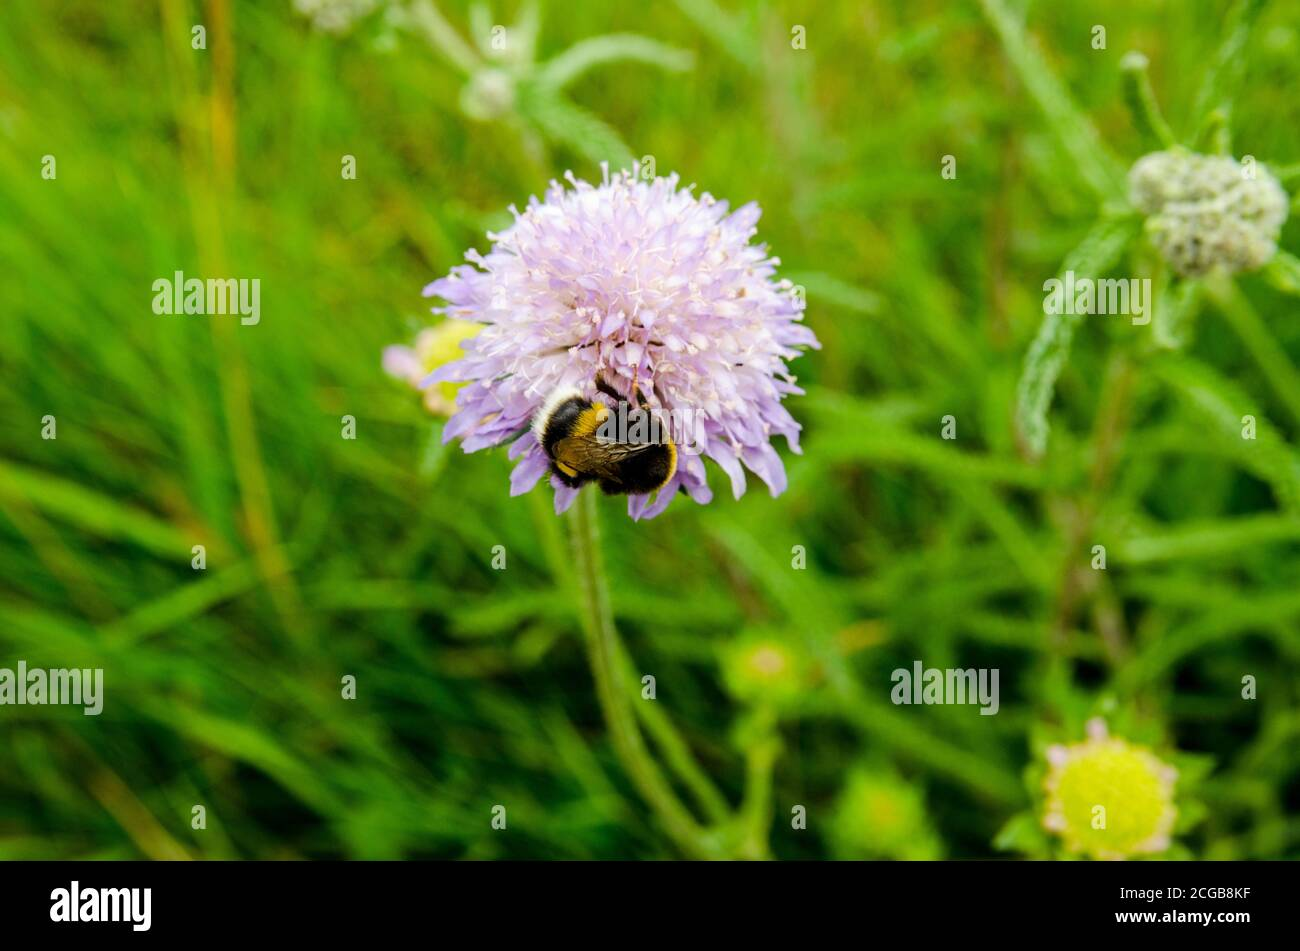 A bumble bee covered in pollen as it feeds from a wild blue scabious flower in a hedgerow in Basingstoke, Hampshire. Stock Photo